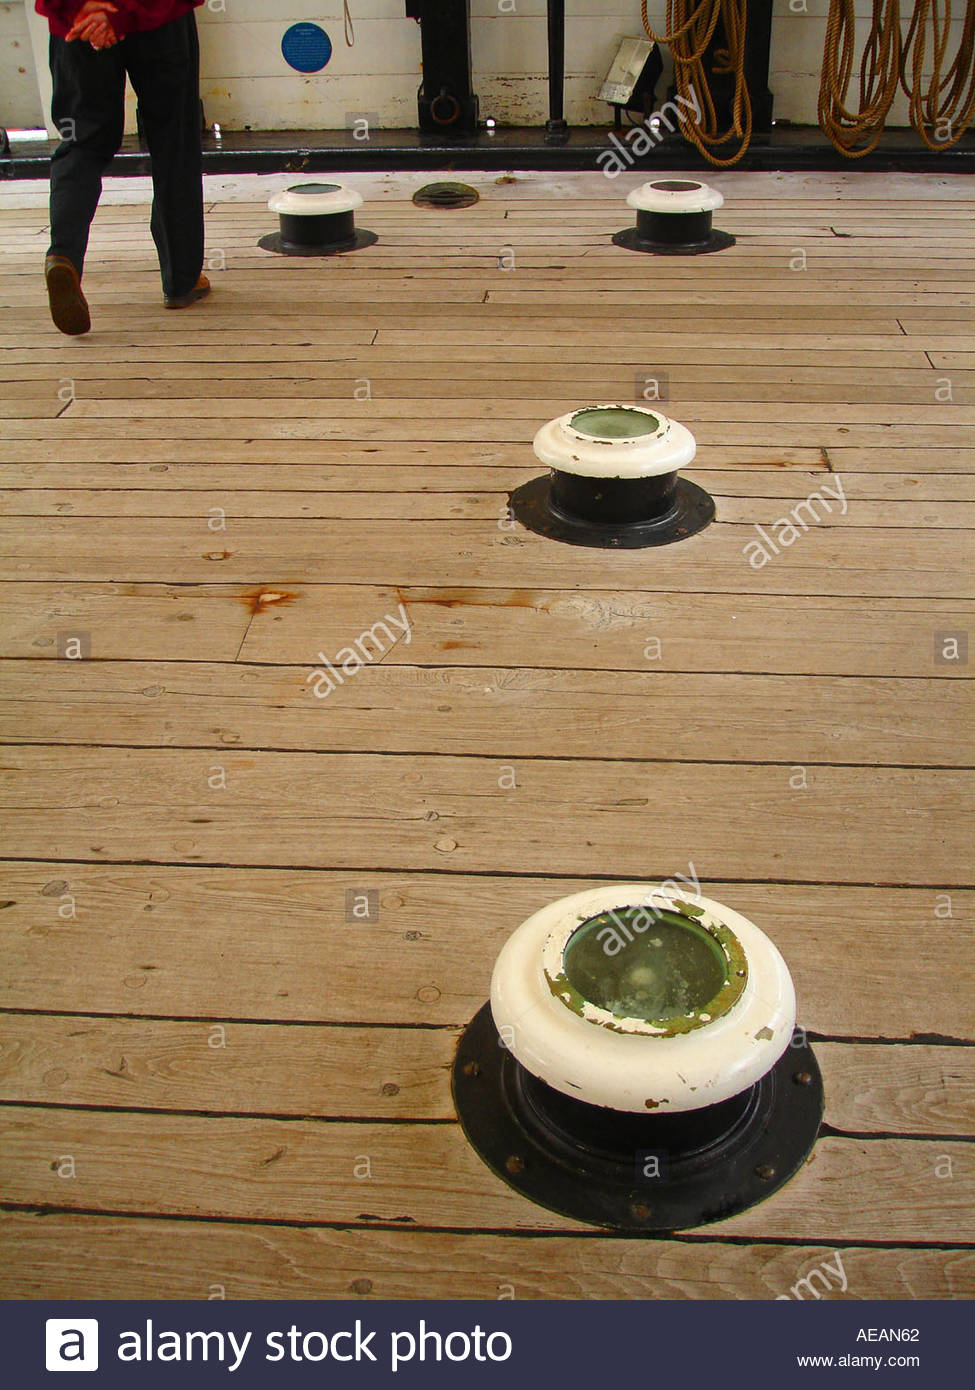 The deck of a tall ship - Stock Image